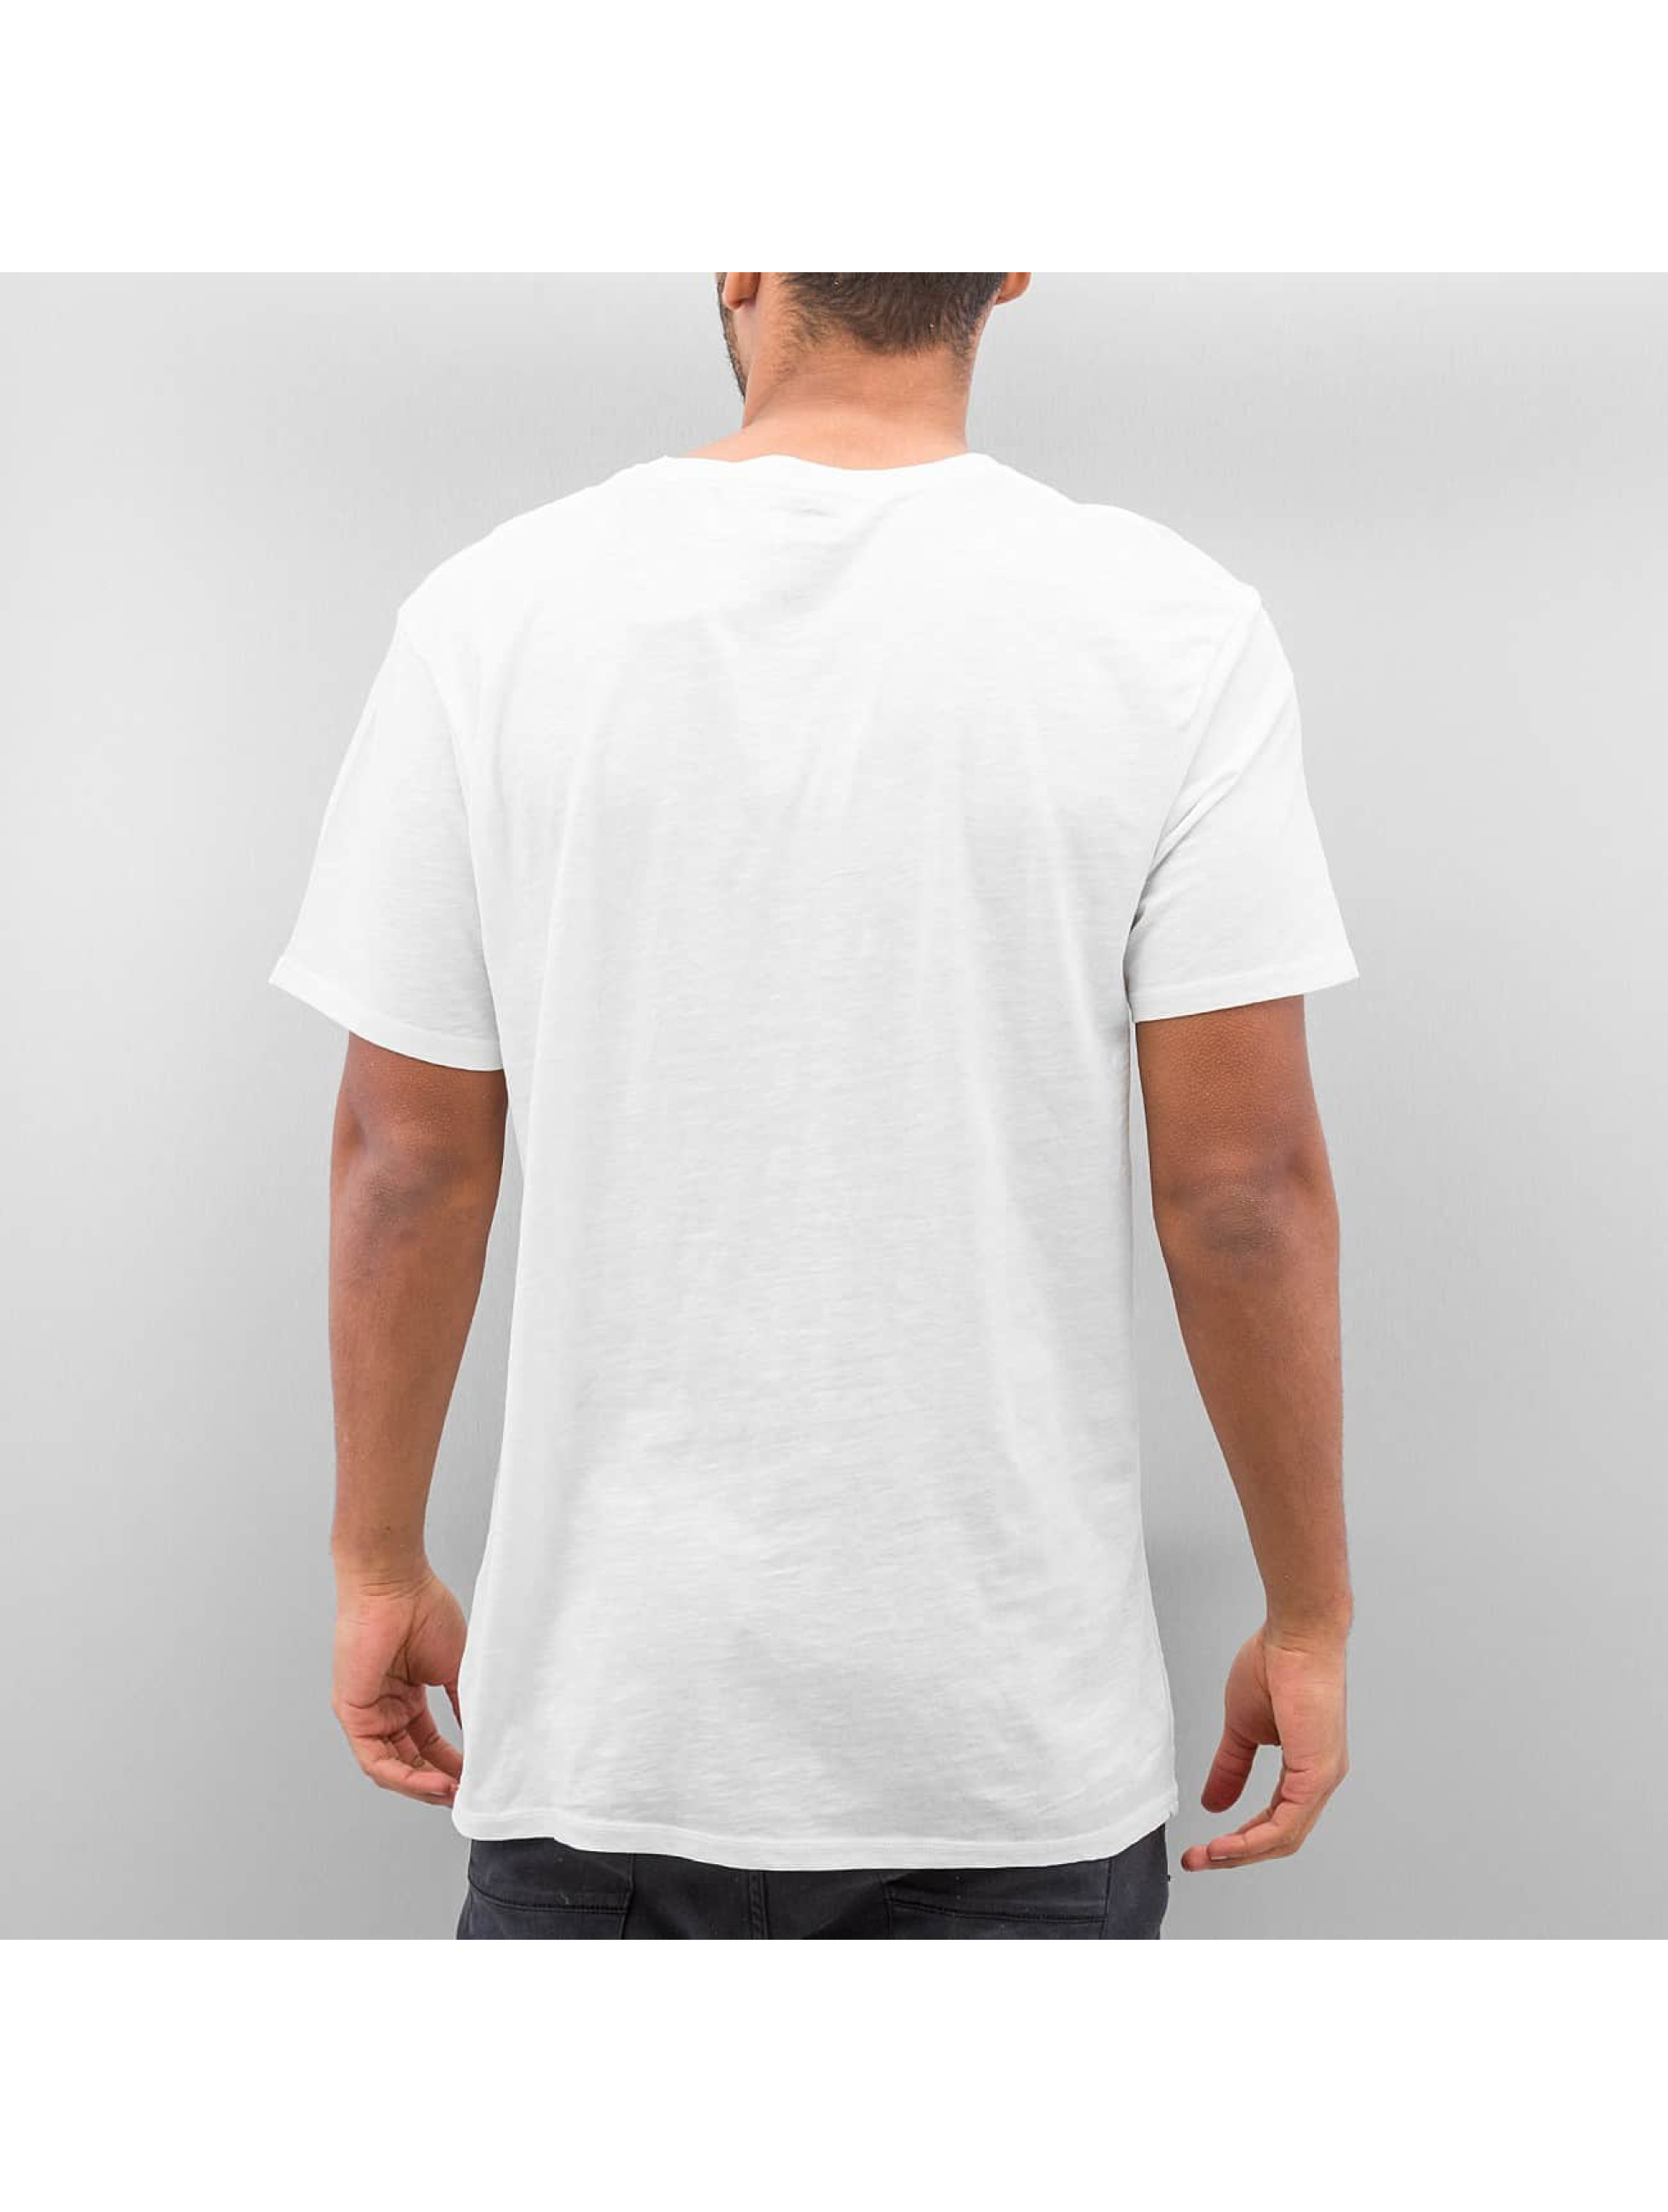 Quiksilver t-shirt Slub Split Screen wit